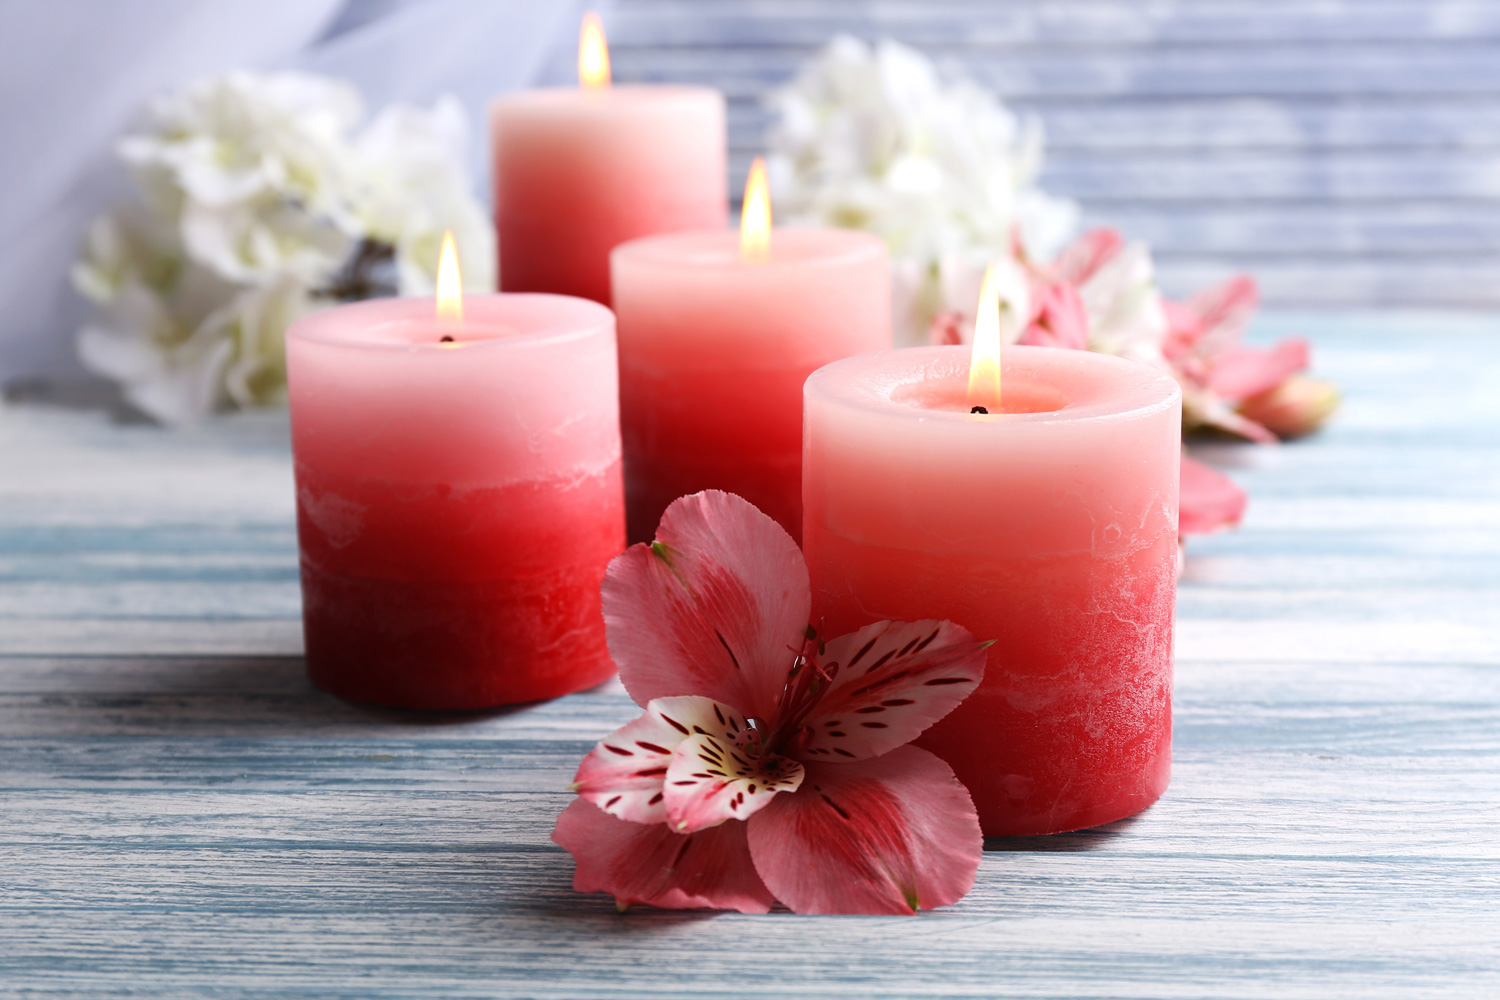 If you're looking to add some warmth and heavenly aromas to your home, consider these best, long-lasting scented candles.